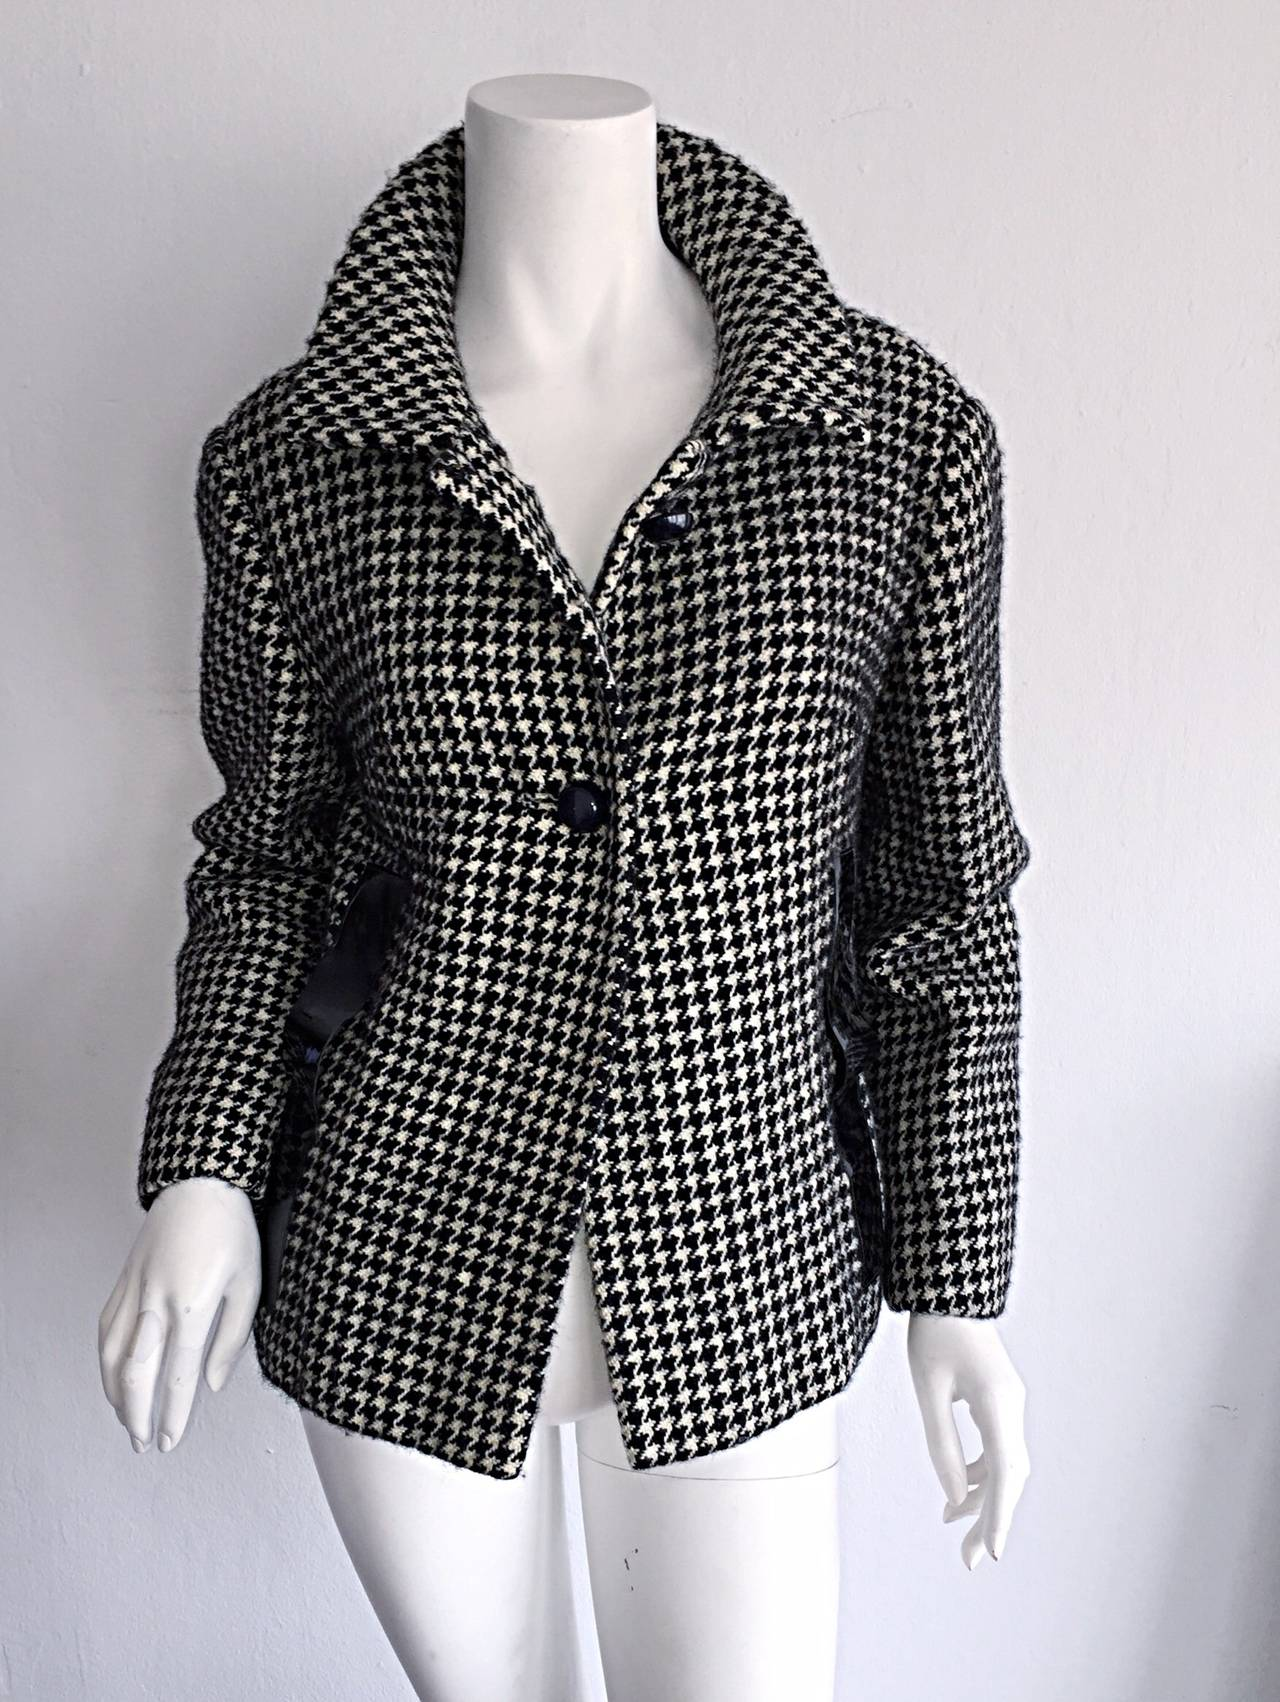 Incredible and Rare! Vintage 1960s Pierre Cardin Couture black and white houndstooth swing jacket! Signature vinyl detail at either side of waist. An amazing piece of fashion history! Looks great from day to night. Made in France. In great